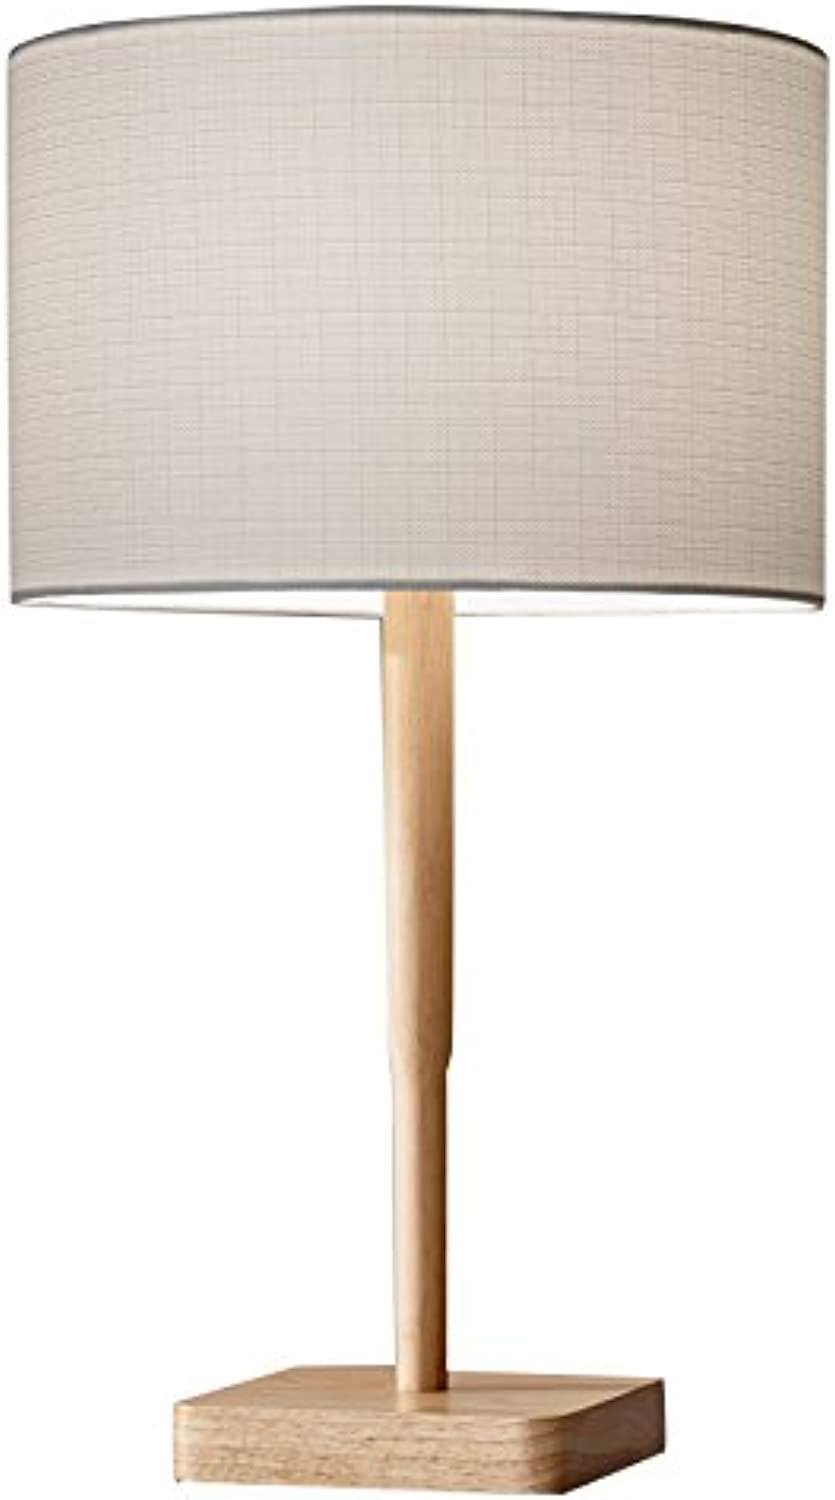 Adesso 4092-12 Ellis 21  Table Lamp, Natural, Smart Outlet Compatible